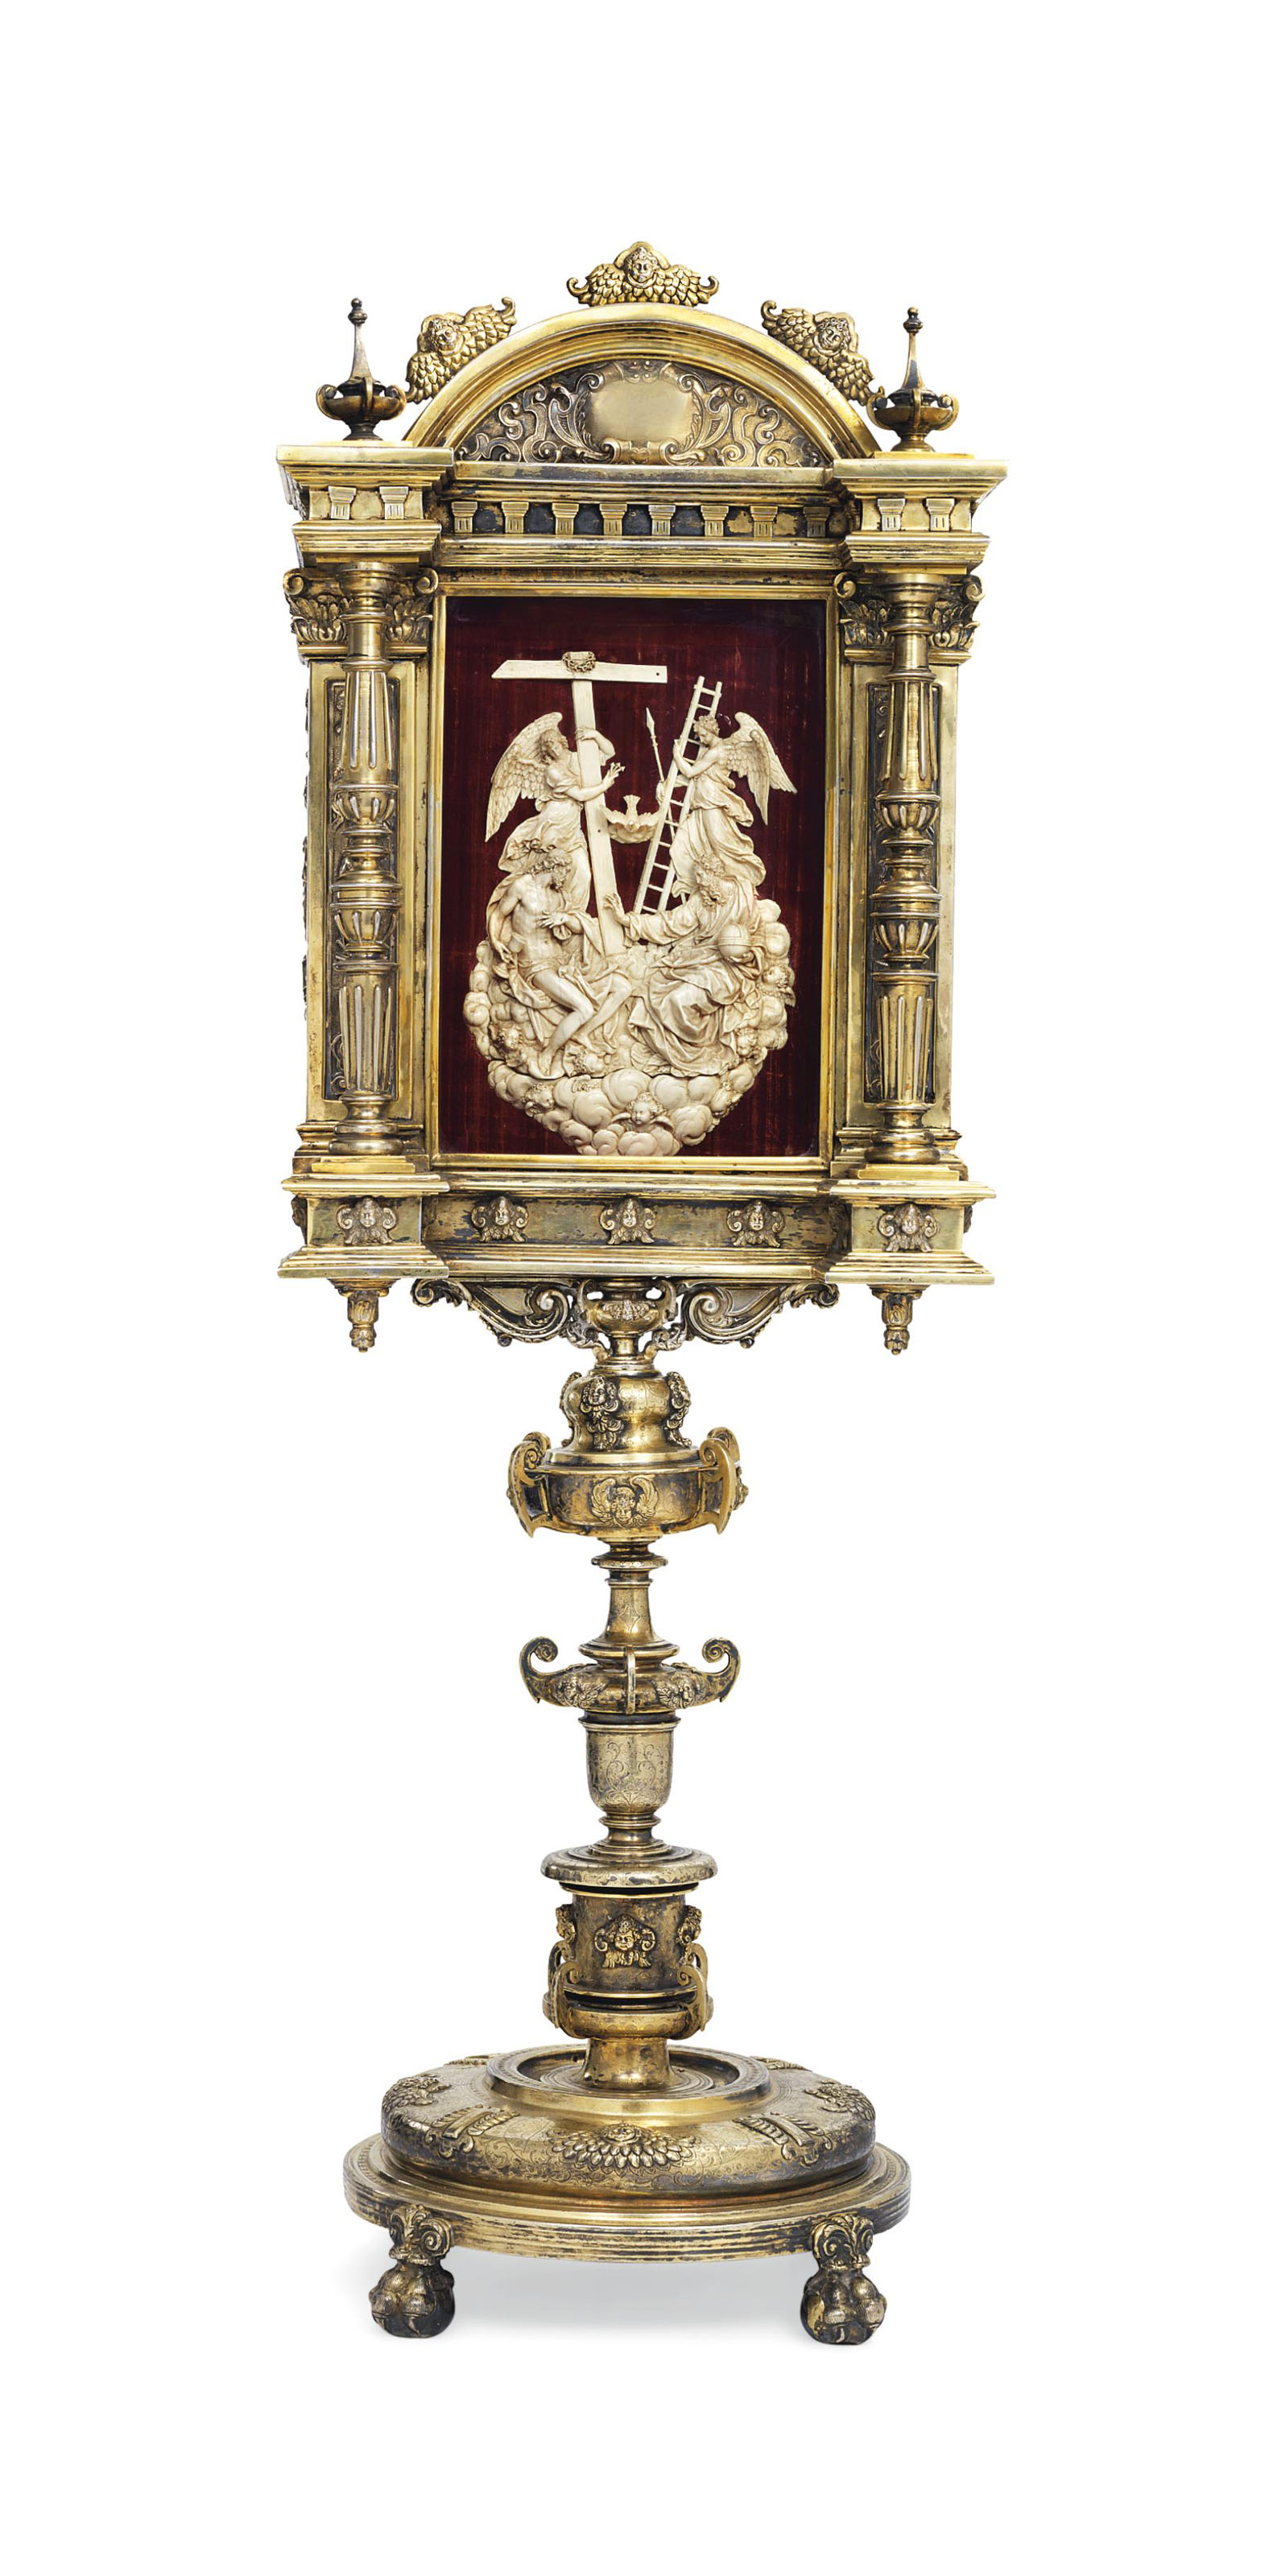 A SILVER-GILT FRAMED CARVED IVORY RELIEF OF THE HOLY TRINITY